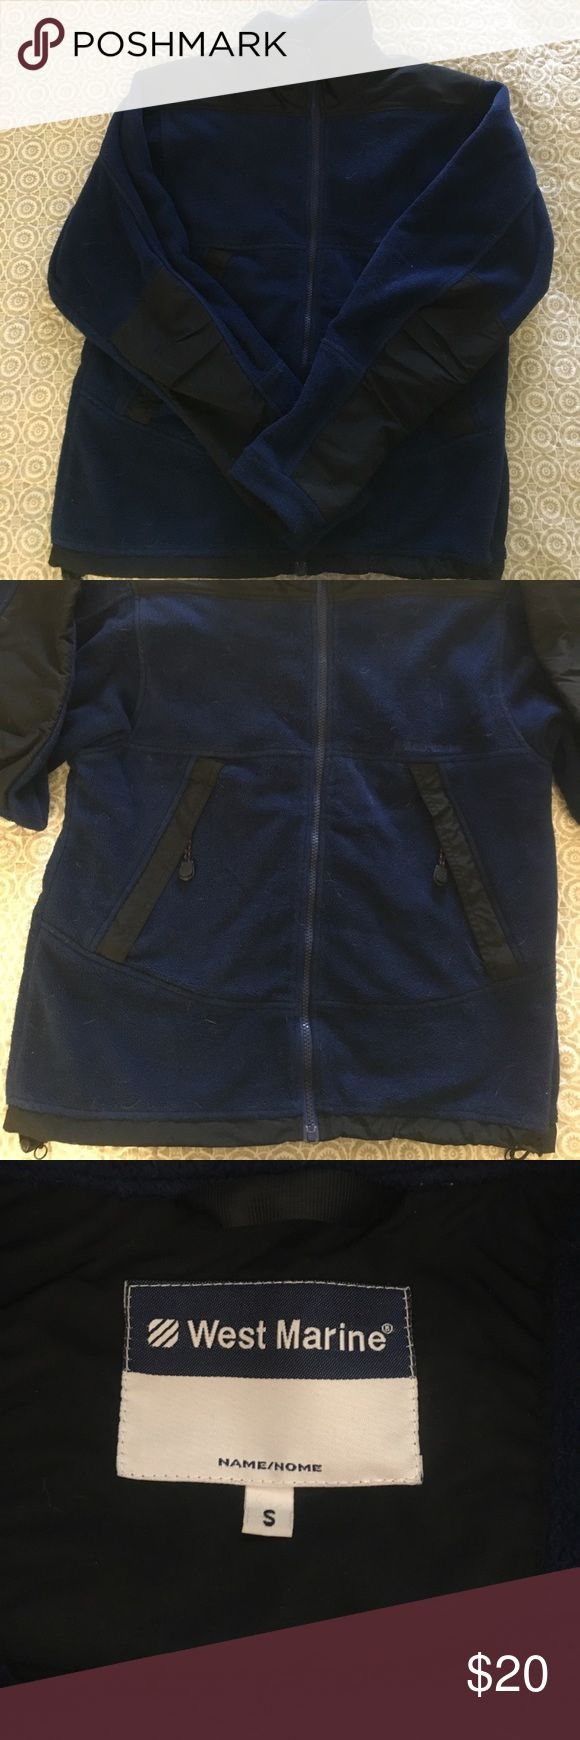 Men's West Marine Fleece Nice thick fleece by West Marine. Older style but excellent condition. Cinch-able bottom and rip-stop elbow and shoulder patches. West Marine Jackets & Coats Performance Jackets